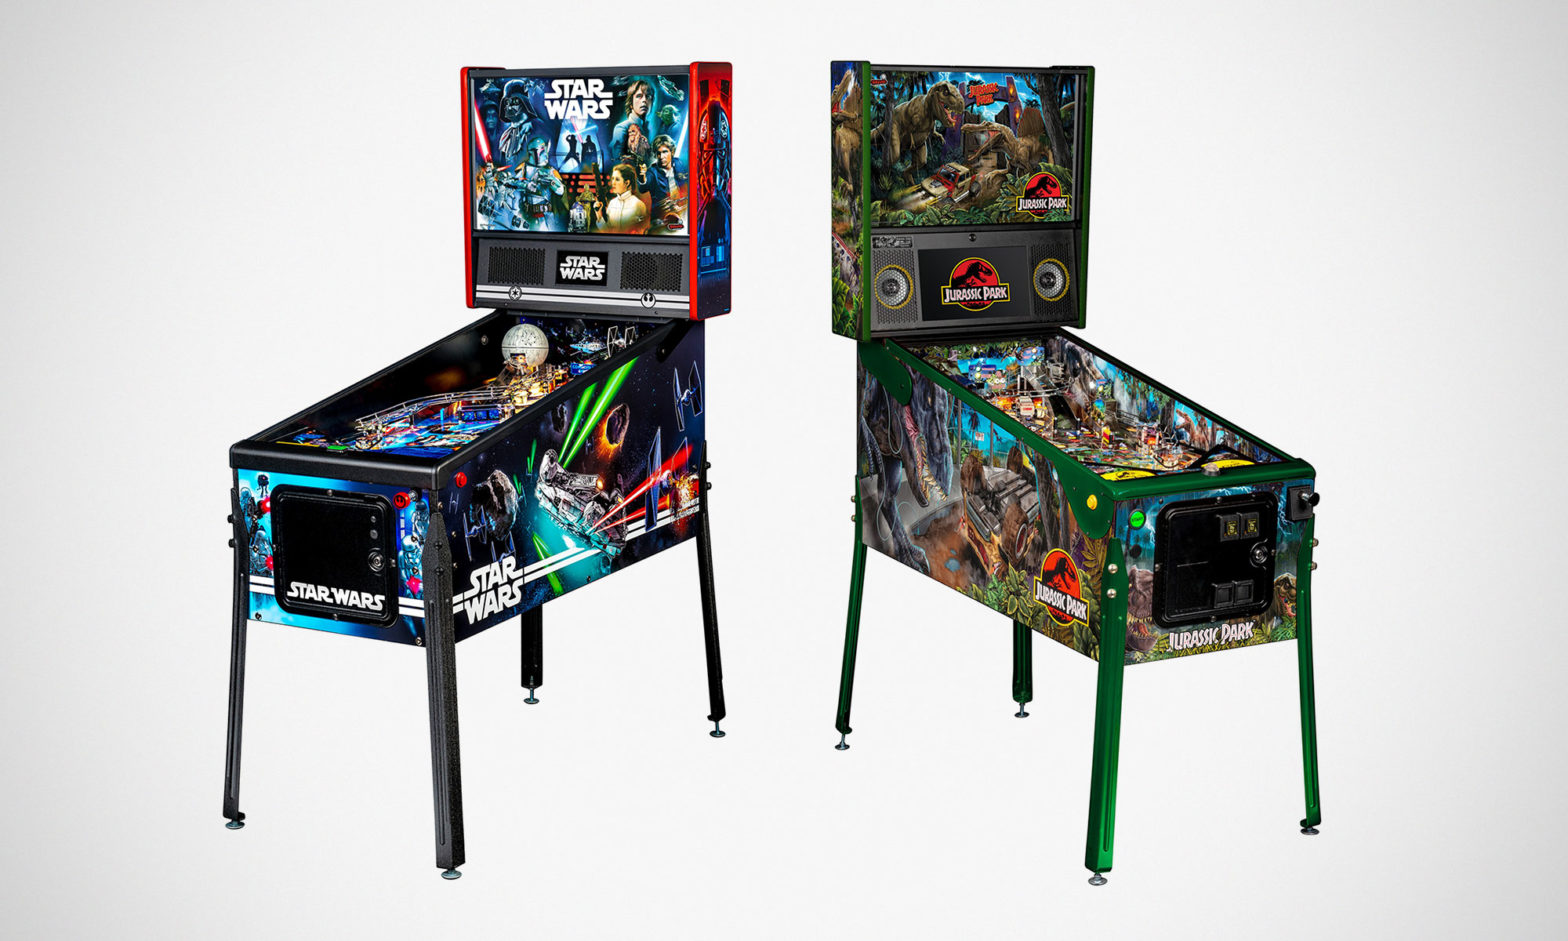 Star Wars and Jurassic Park Pinball Machines